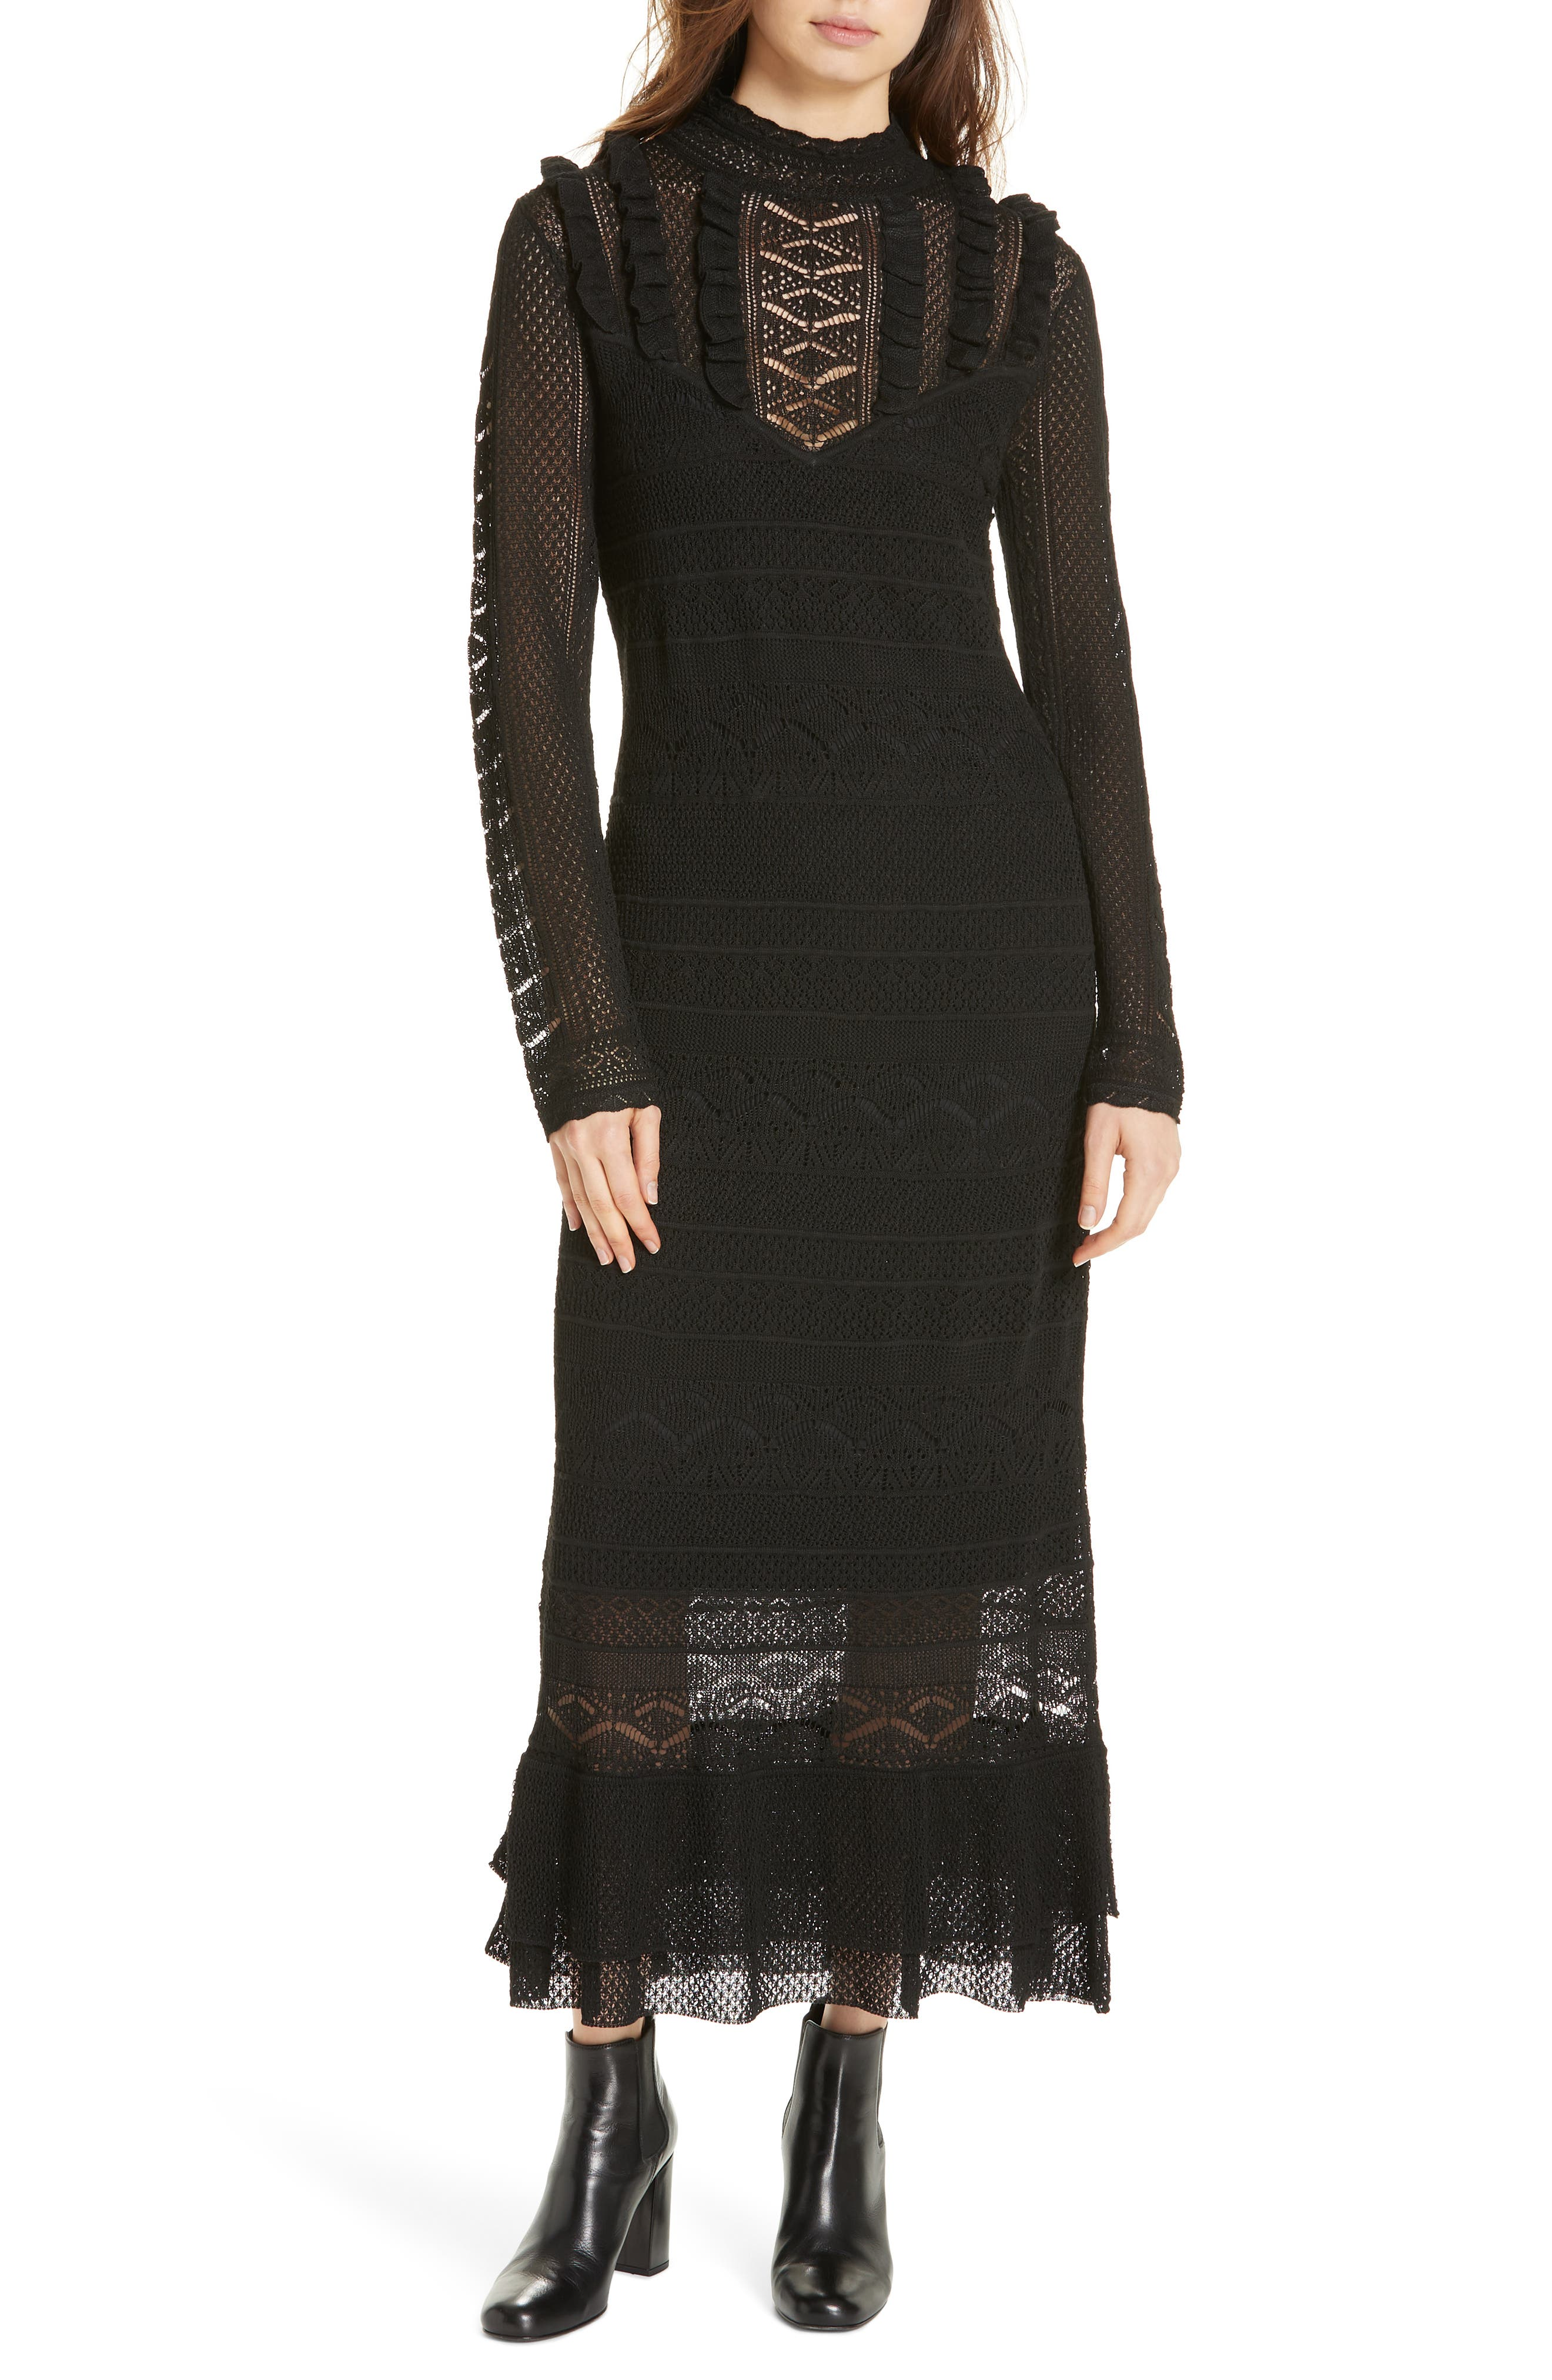 Pointelle Lace Midi Dress,                             Main thumbnail 1, color,                             001